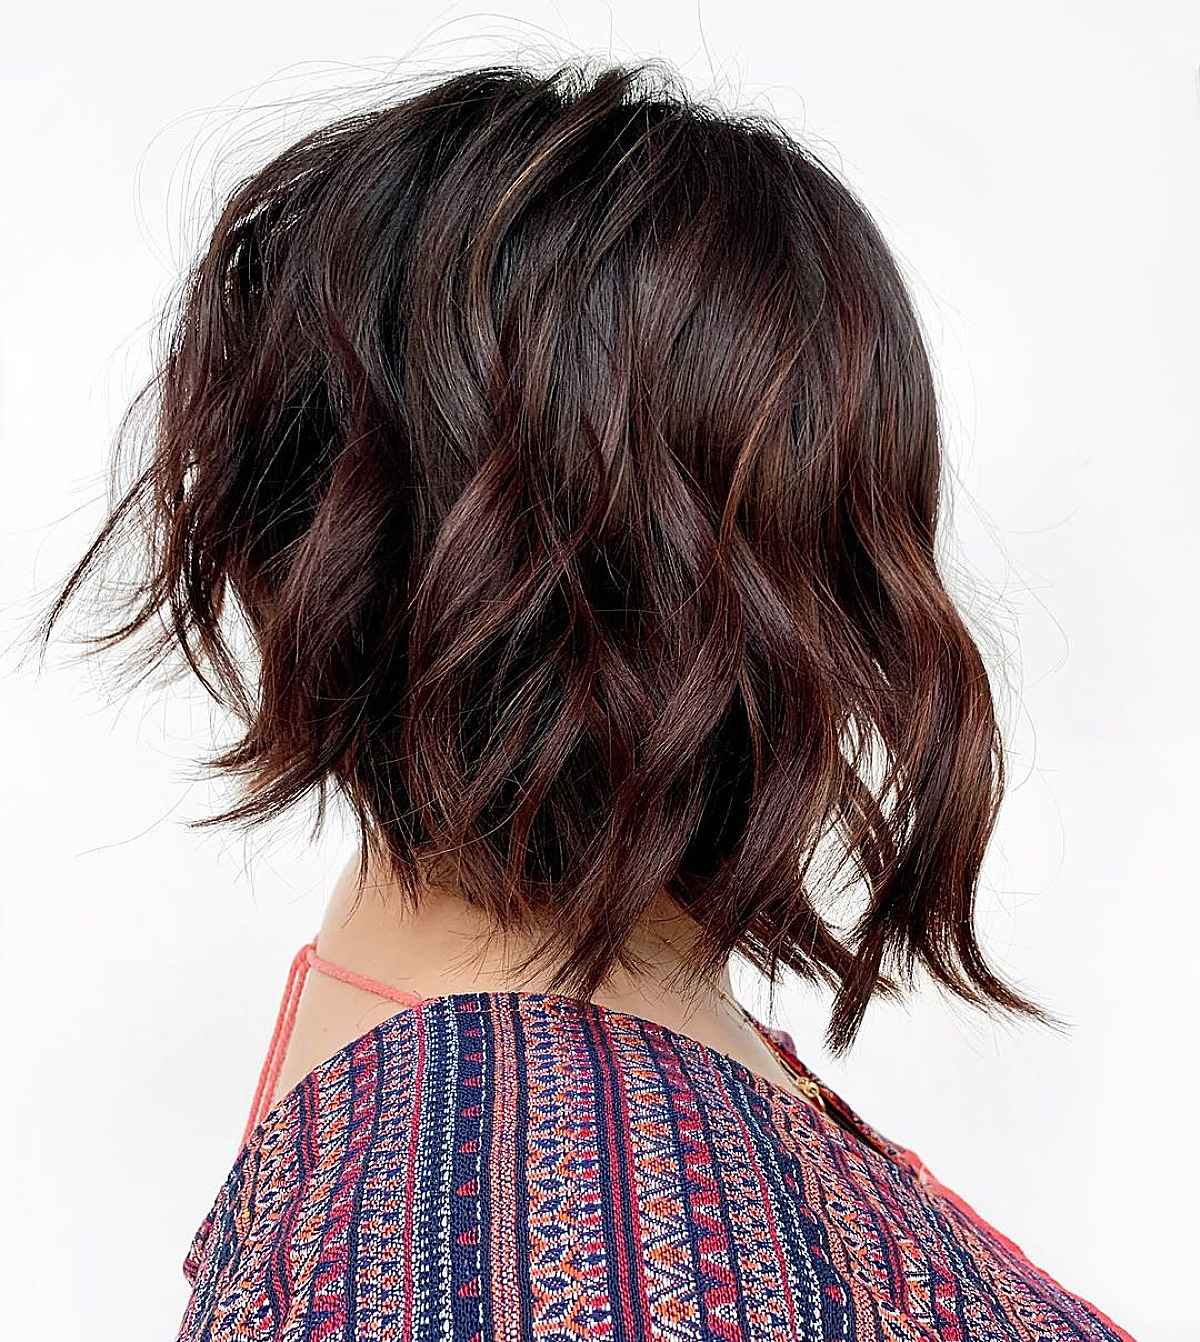 21 Short, Stacked Inverted Bob Haircut Ideas to Spice Up Your Style